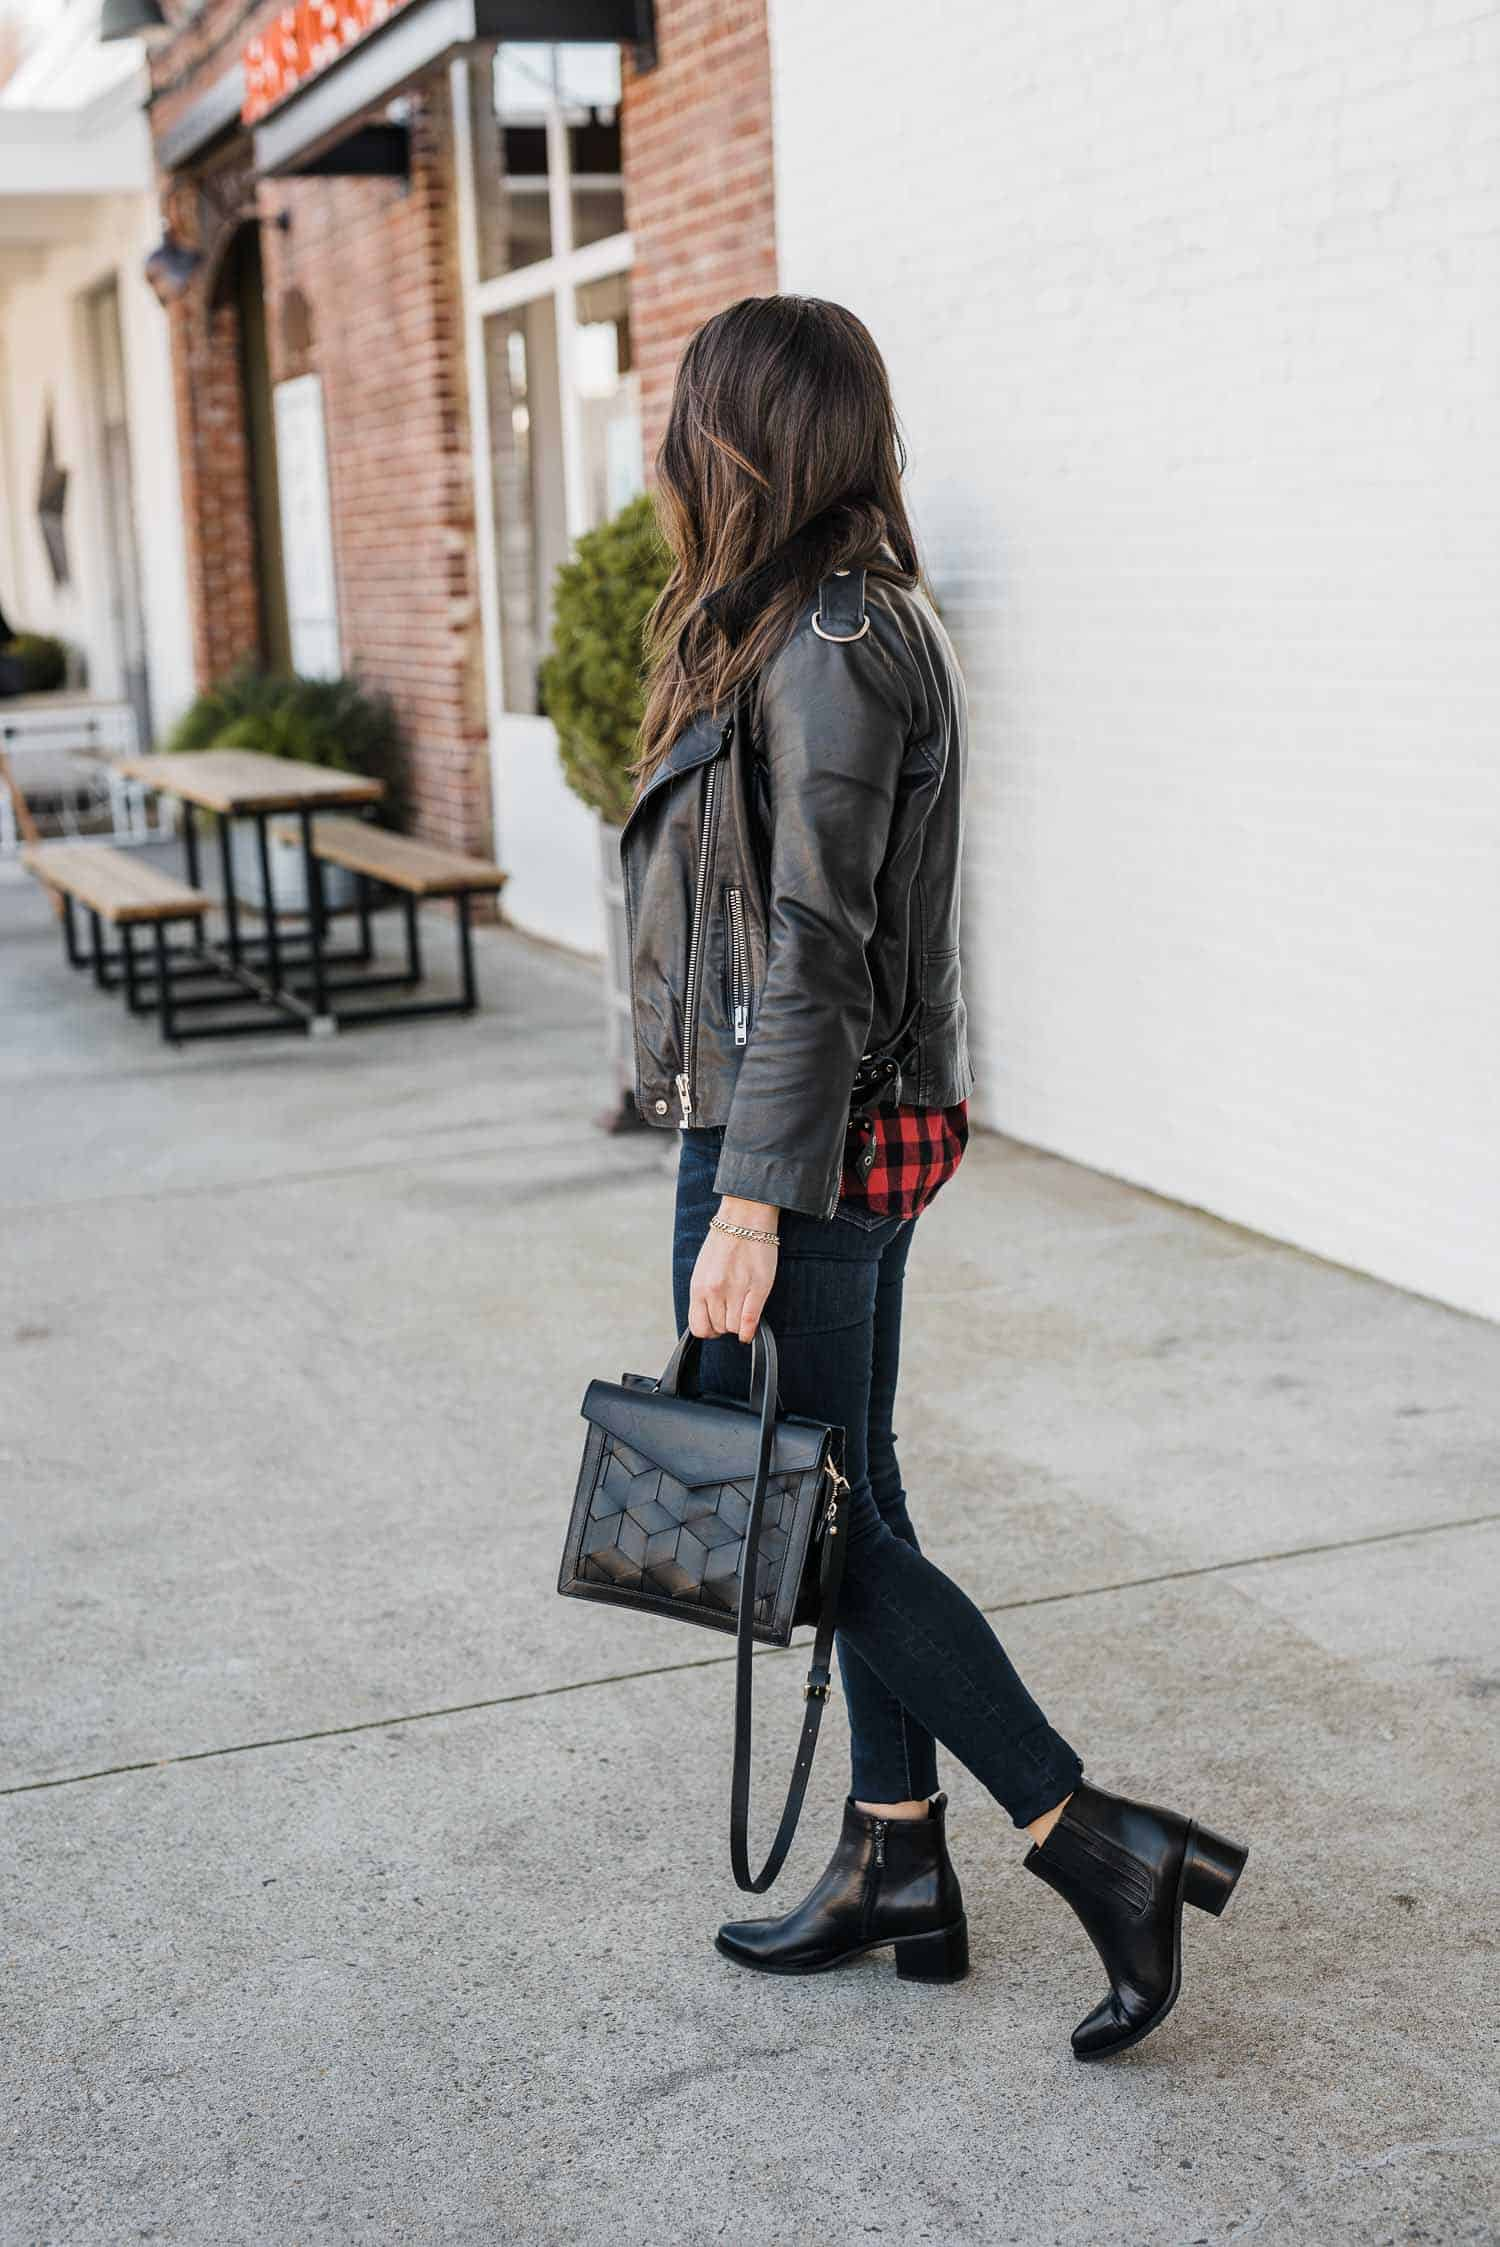 JESSICA CAMERATA OUTFIT DETAILS: MADEWELL PLAID SHIRT, LEATHER JACKET,  MADEWELL JEANS, BLONDO BOOTIES AND WELDEN BAG